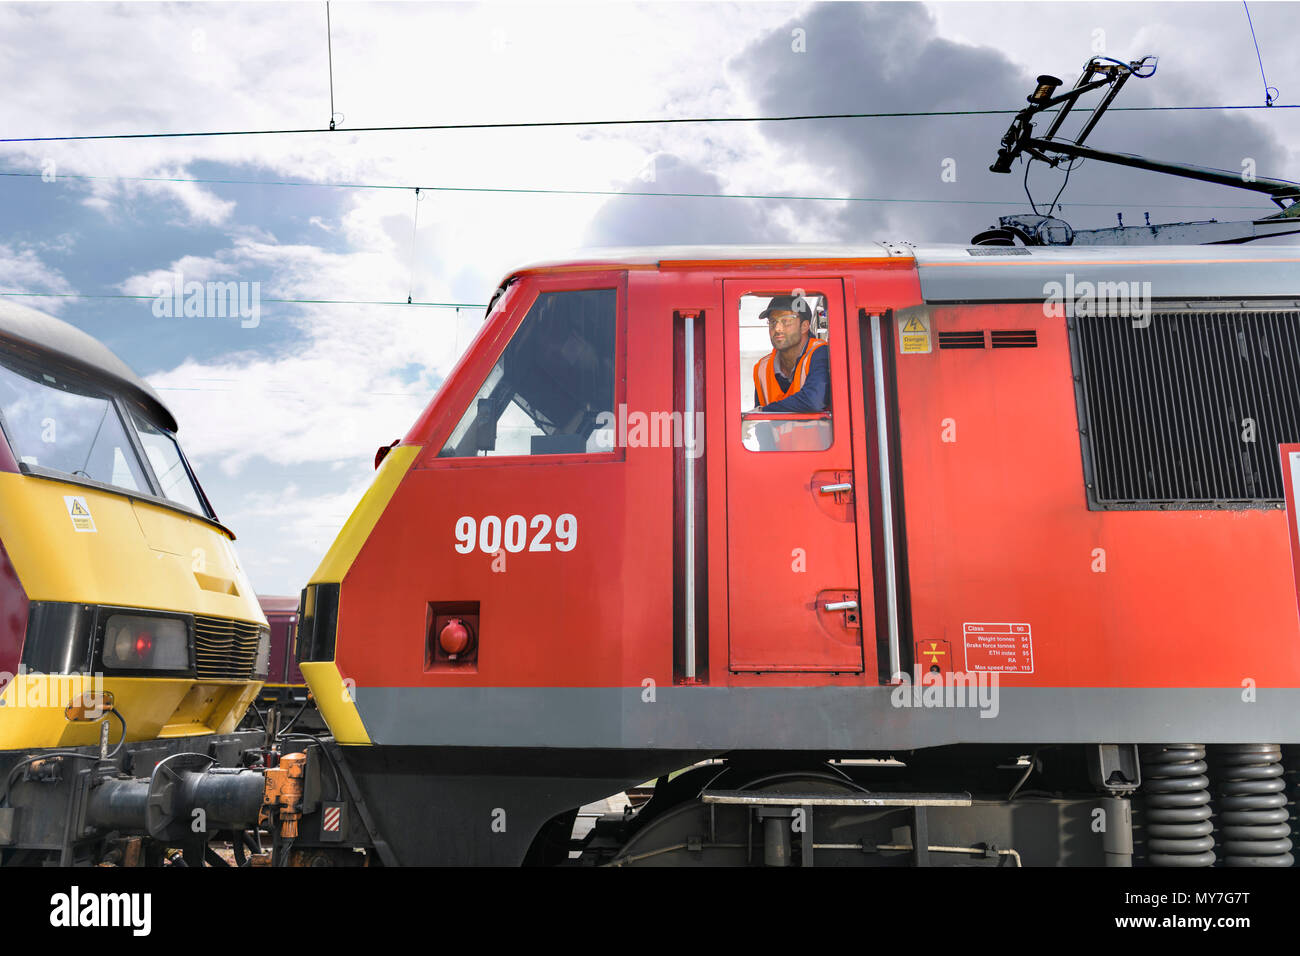 Train driver in locomotive cab in train engineering factory - Stock Image